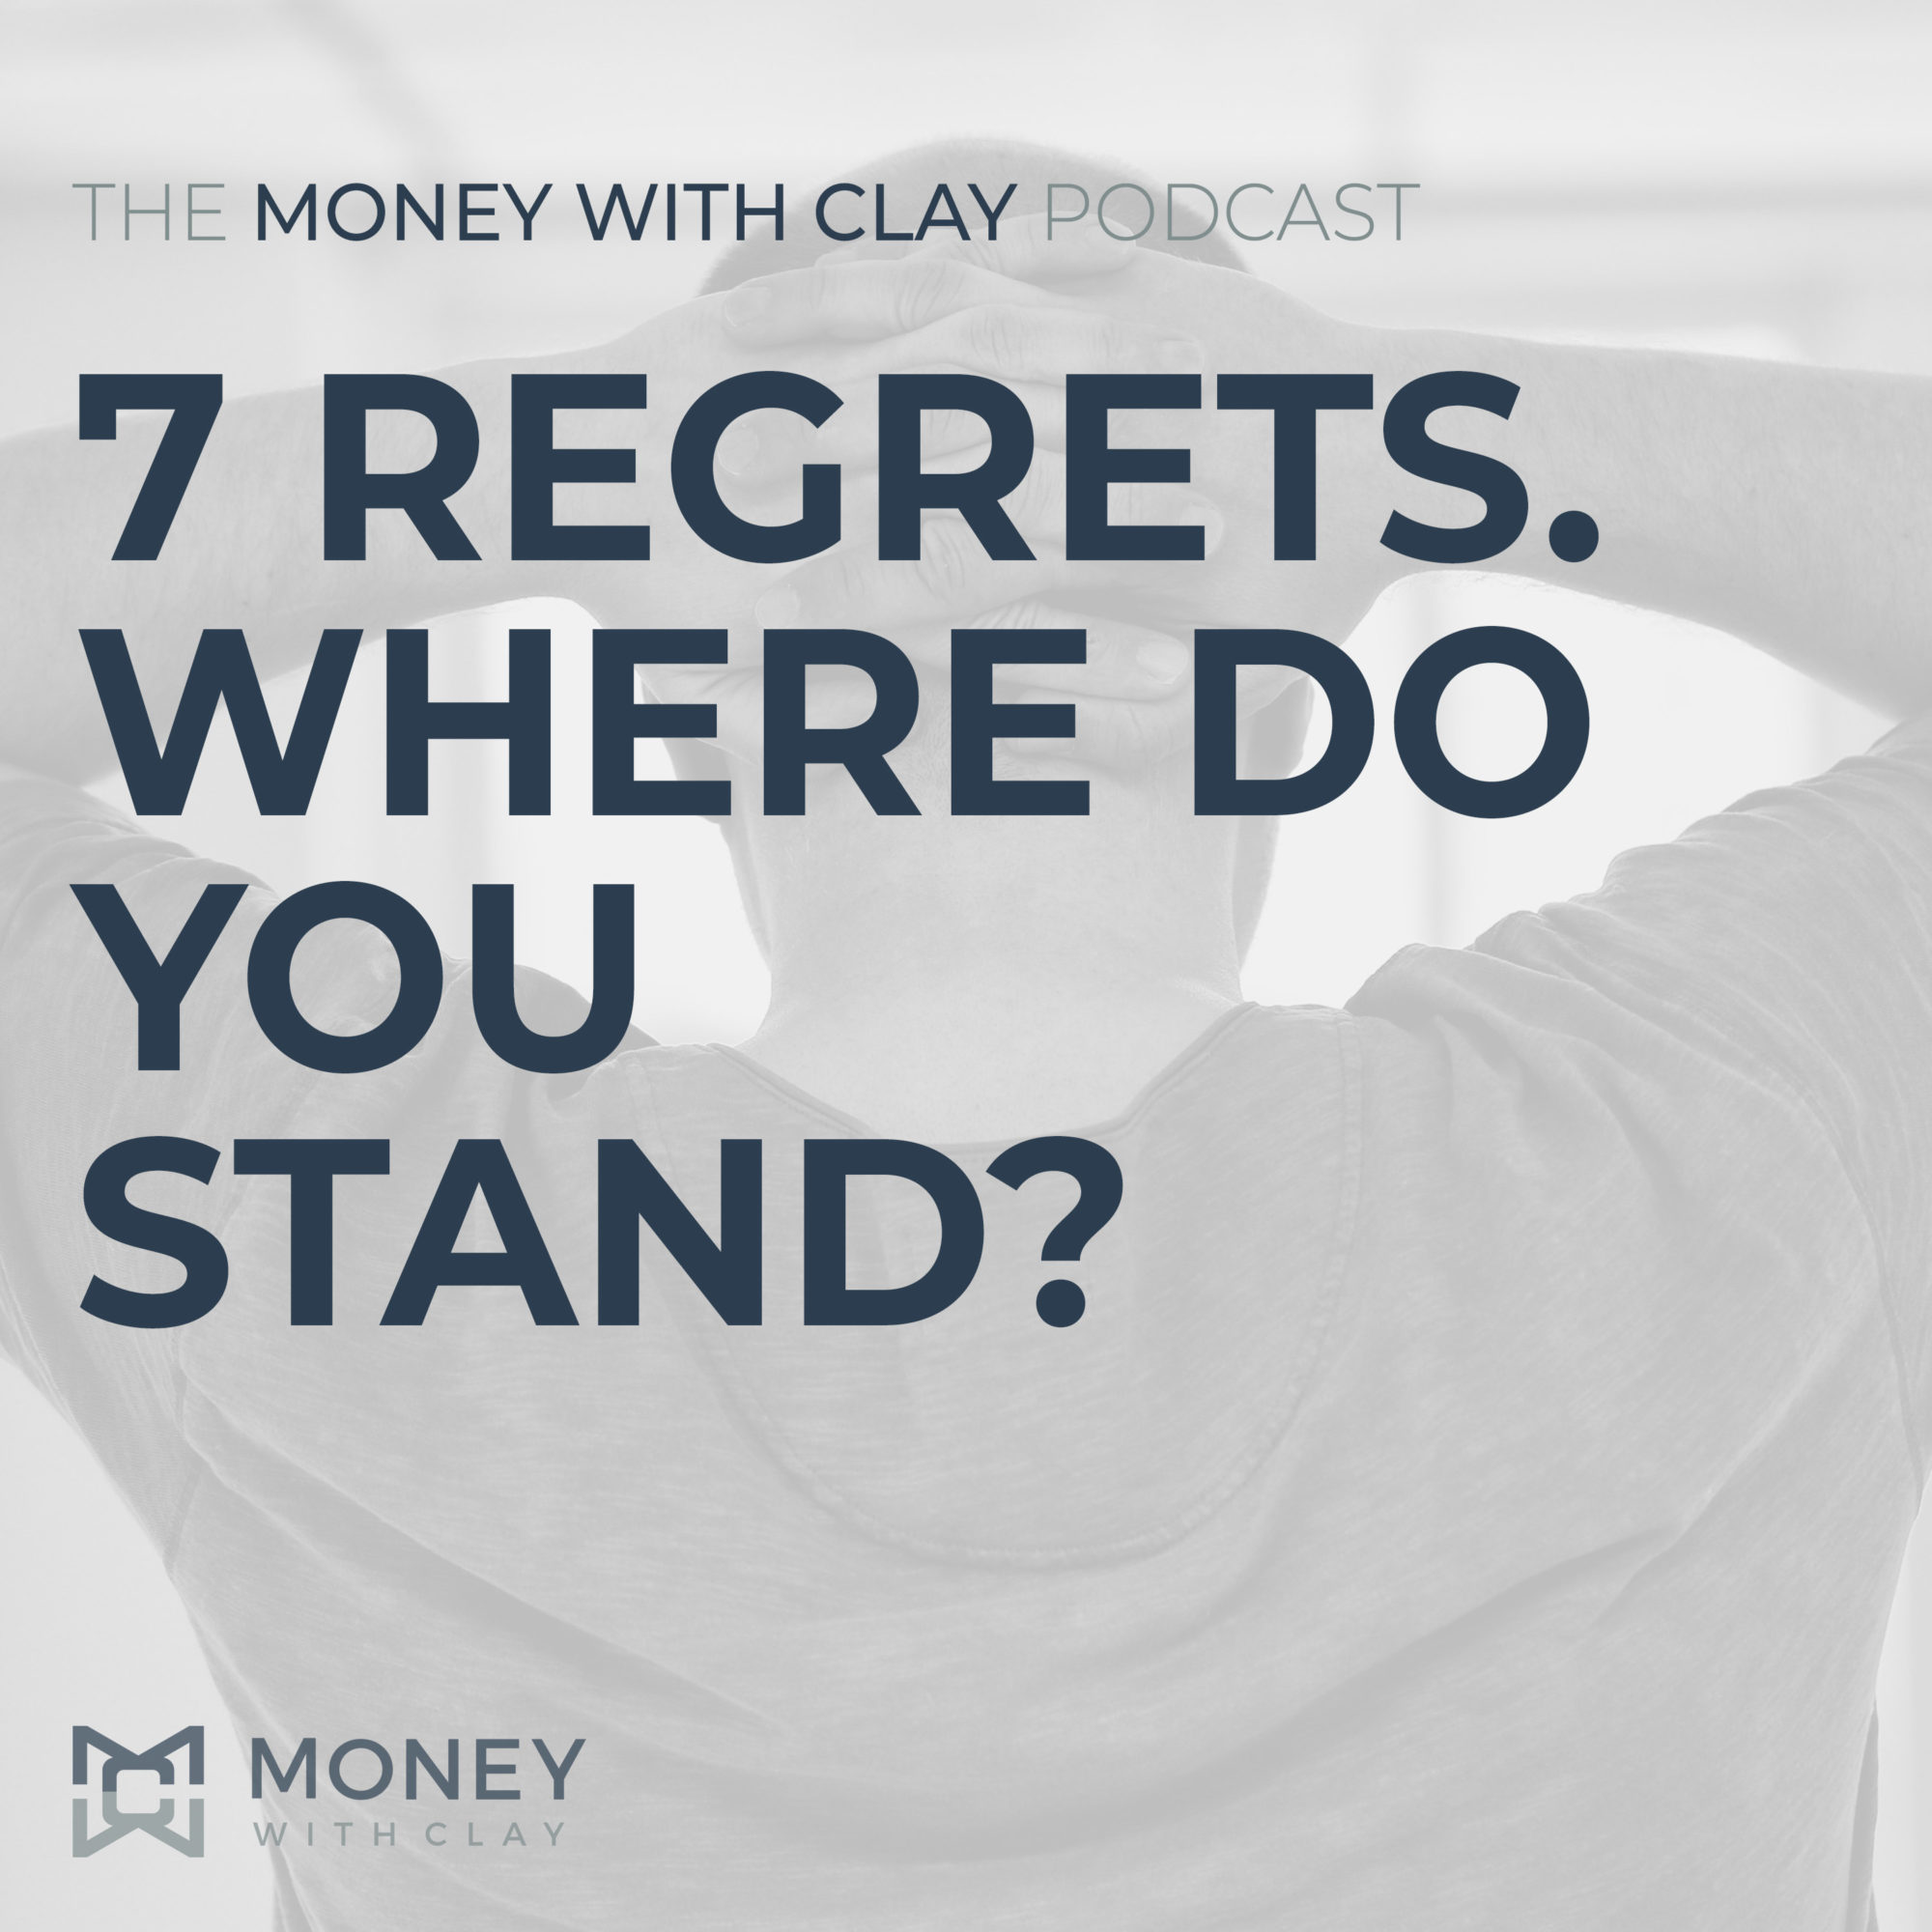 7 Regrets. Where Do You Stand?